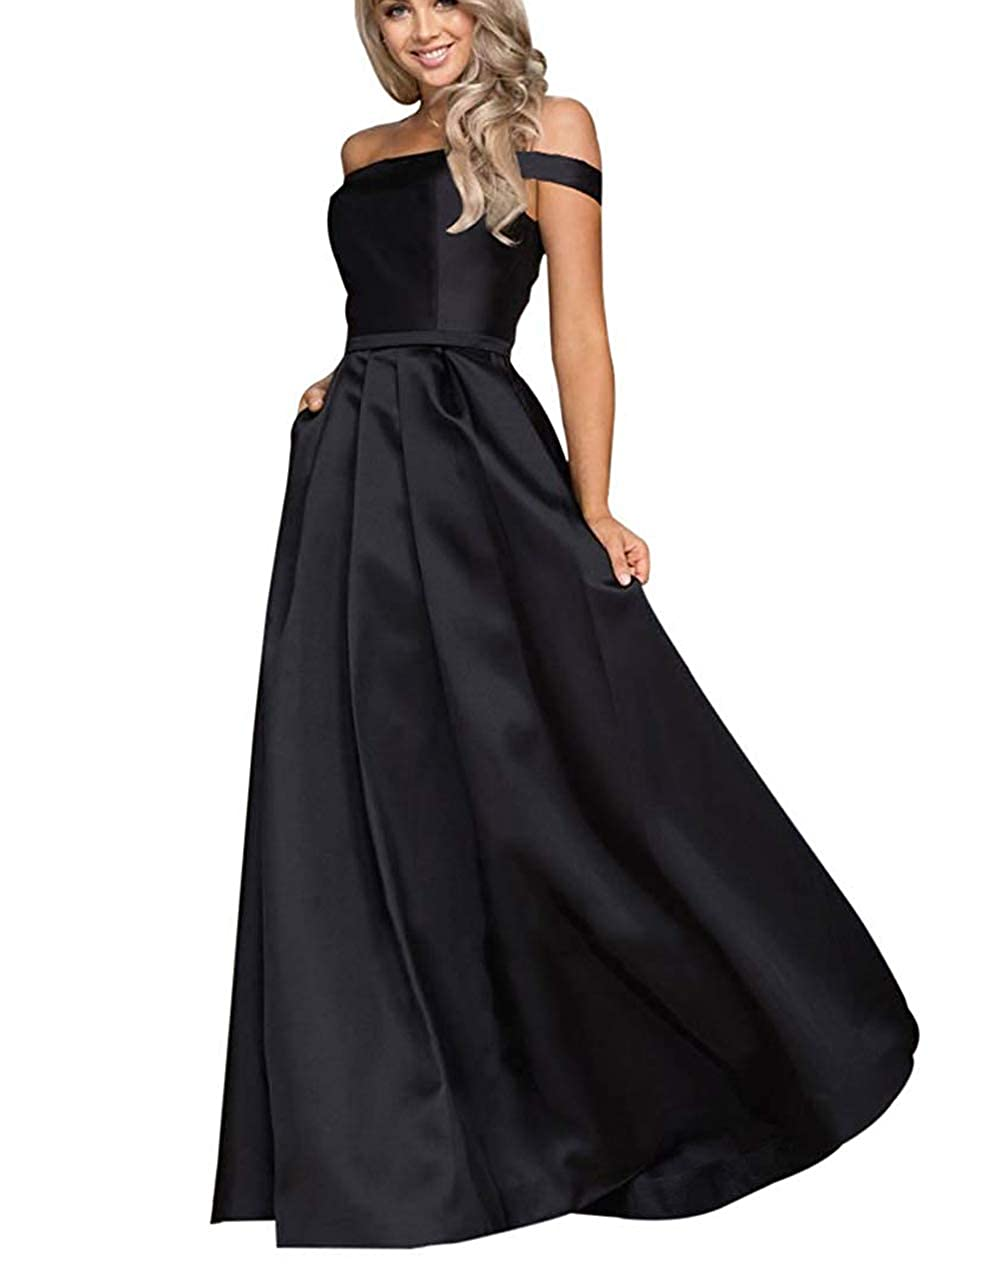 Black Tmaoomo Aline Off The Shoulder Satin Prom Party Dresses for Women Formal Evening Gowns